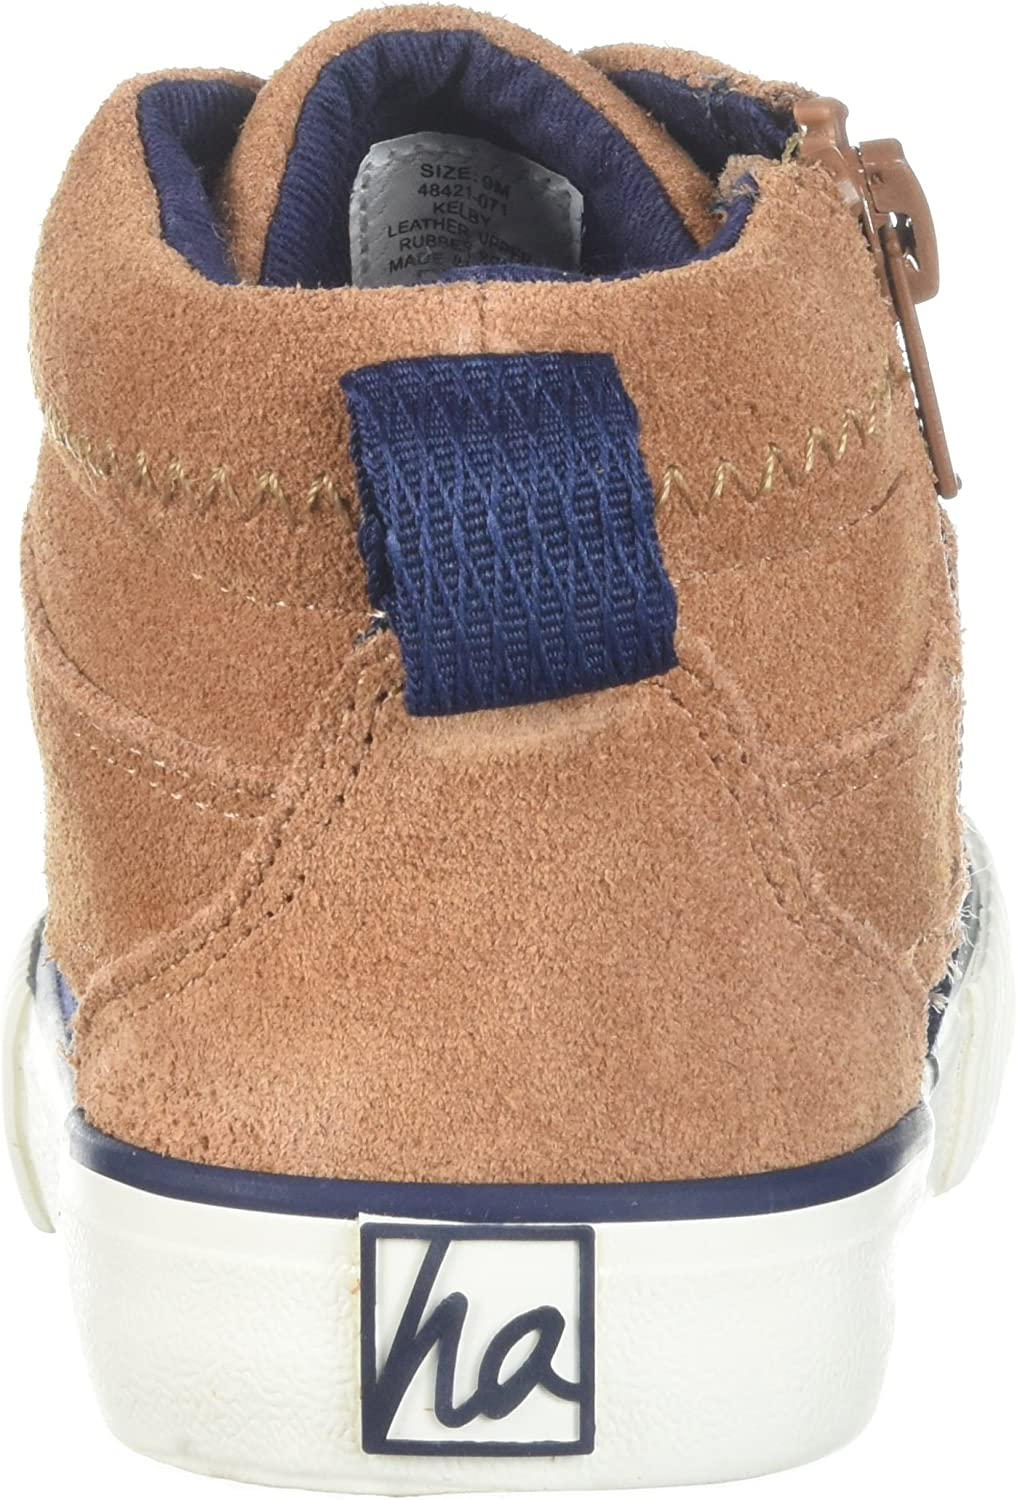 Hanna Andersson Kids Kelby Boys Duck Ankle Boot 48421-071